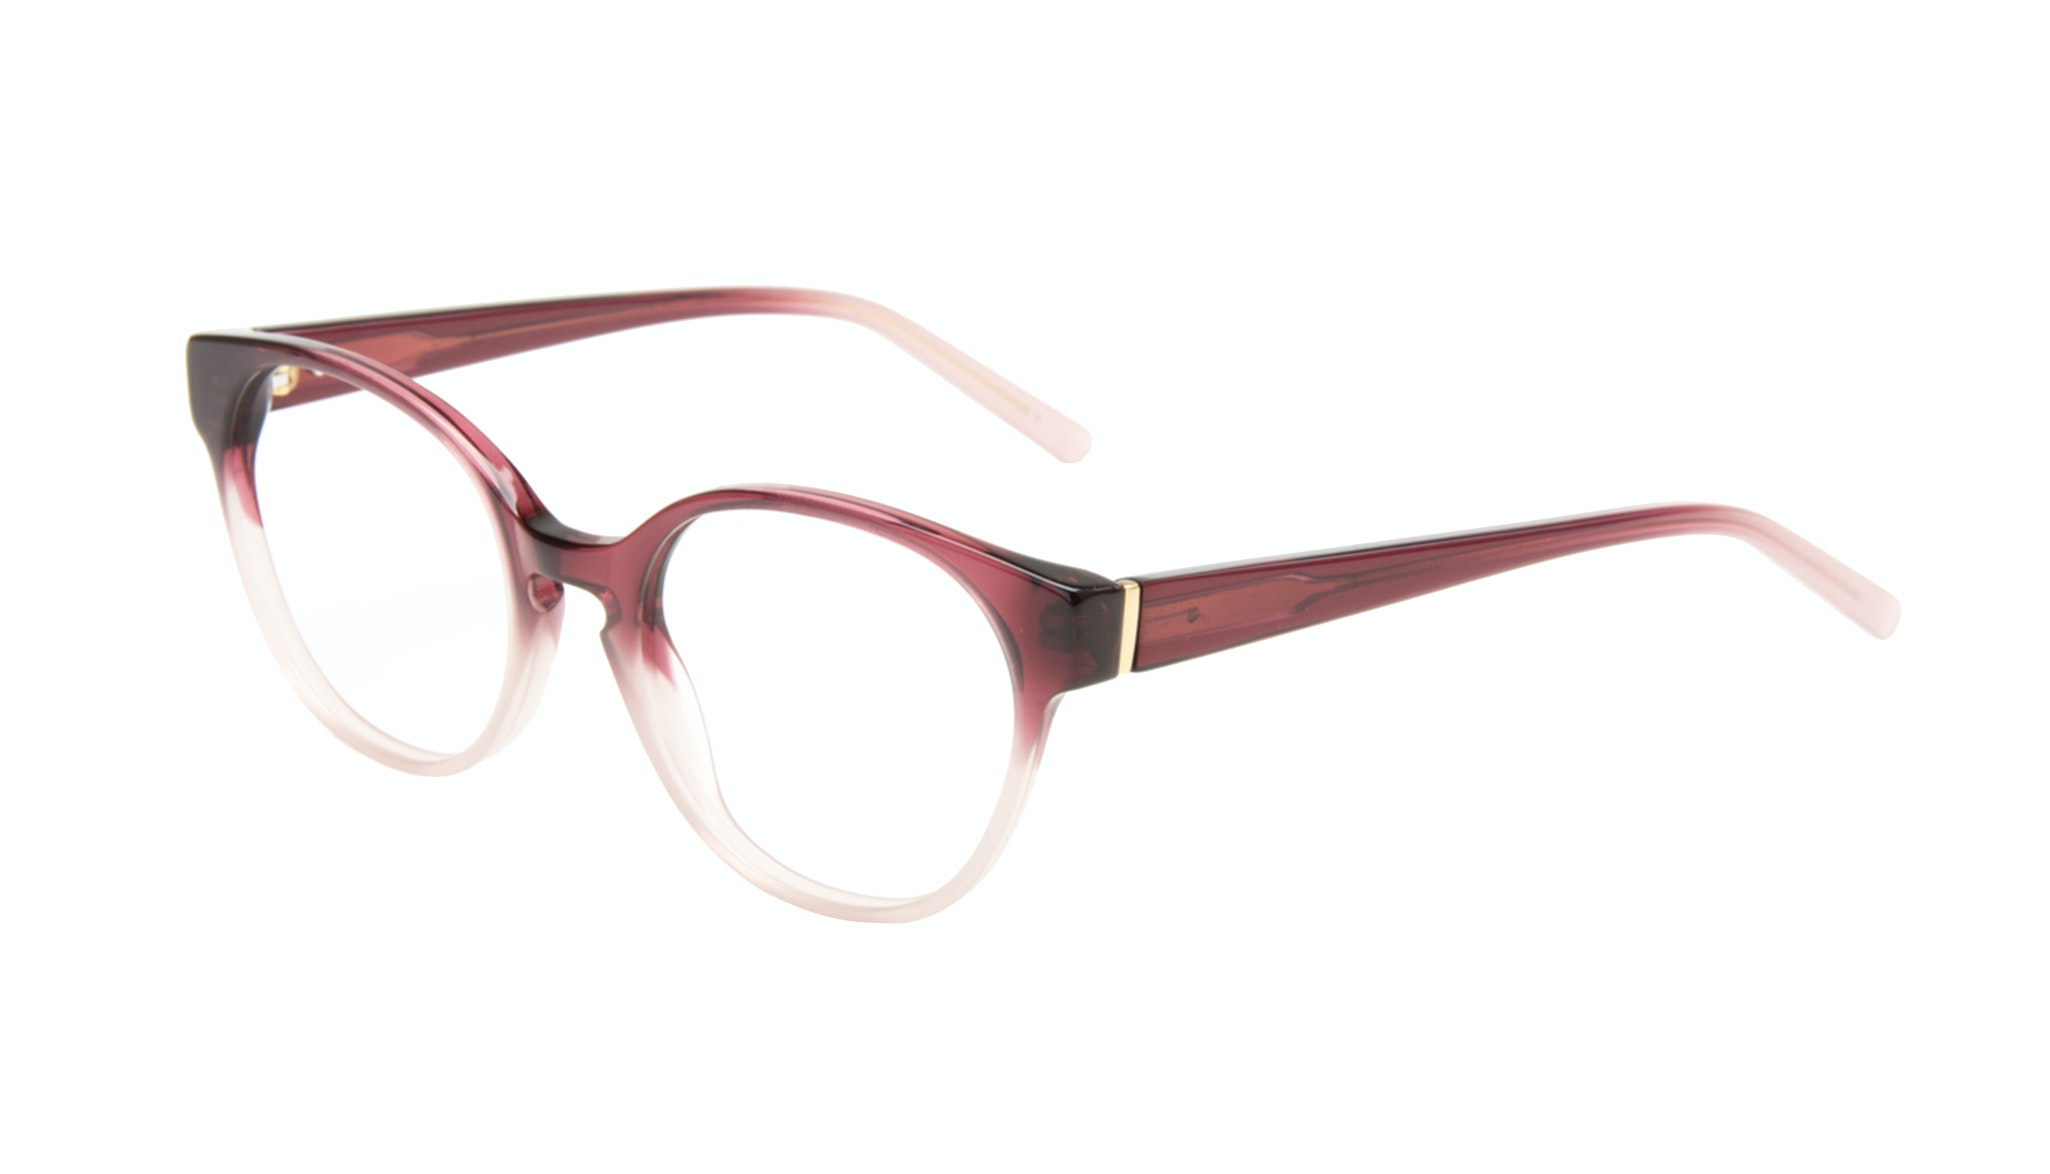 Affordable Fashion Glasses Round Eyeglasses Women Winsome Berry Tilt